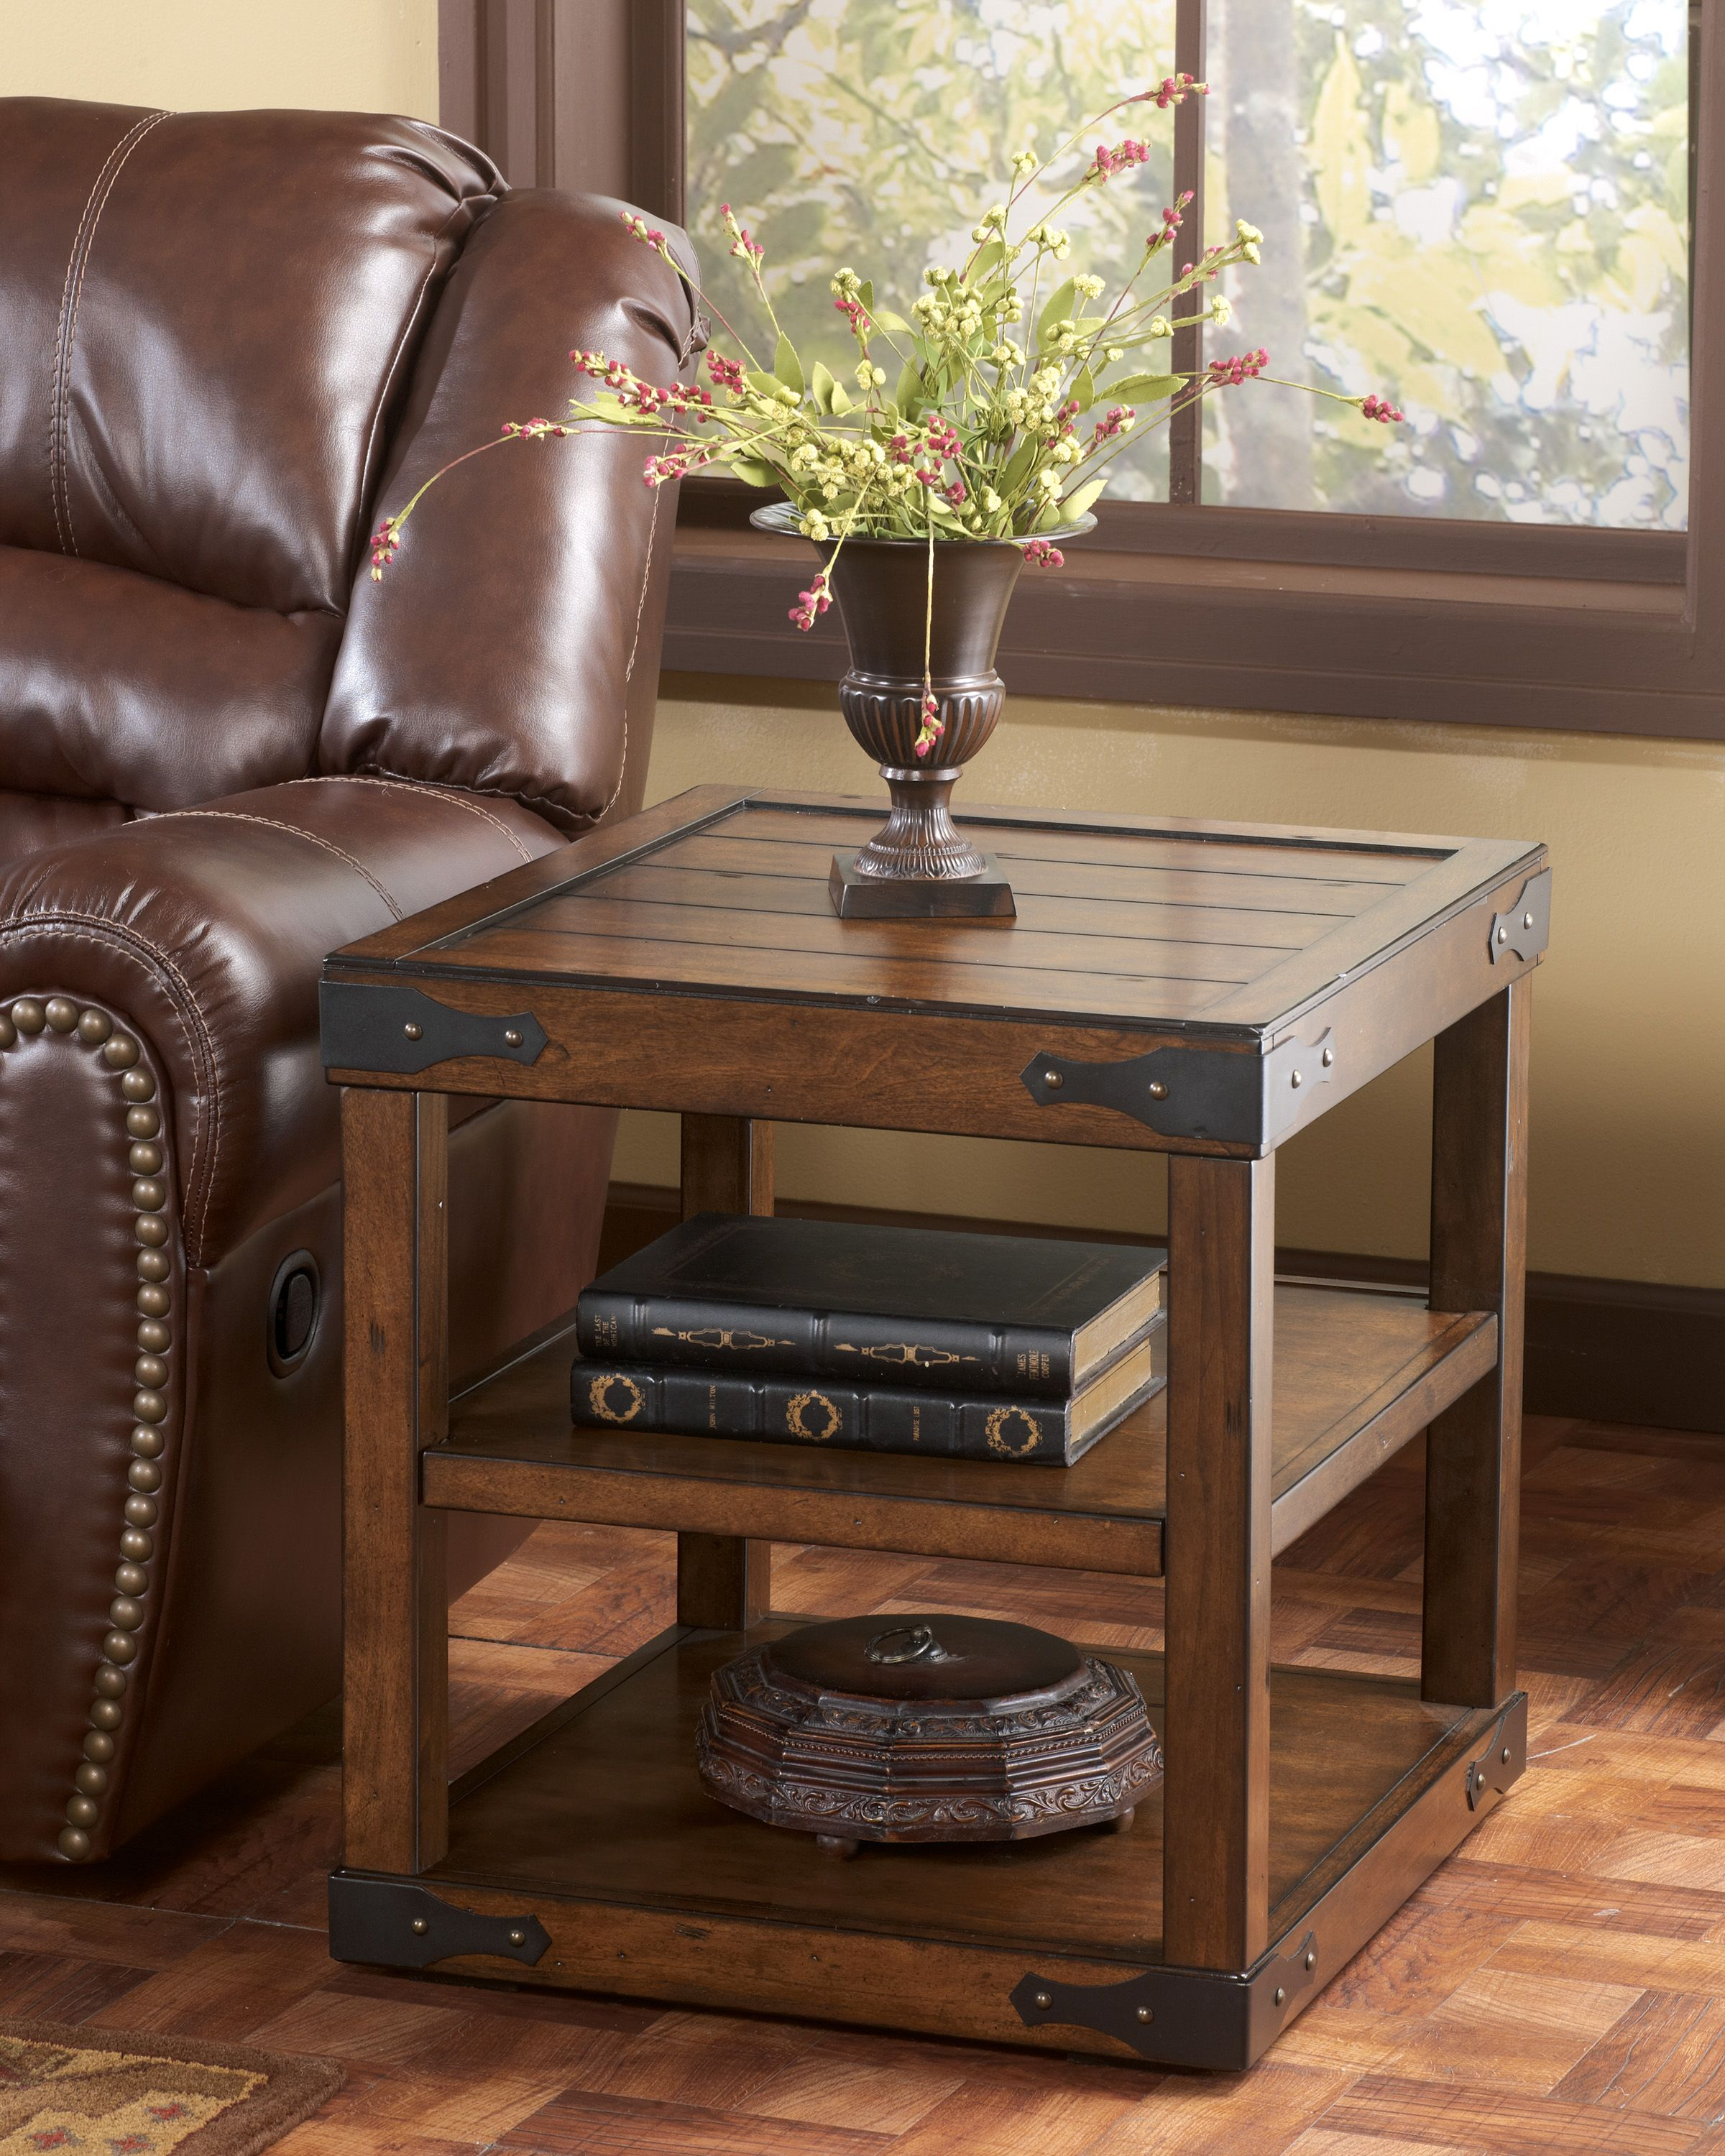 living room end tables glider rustic google search home decor pinterest table